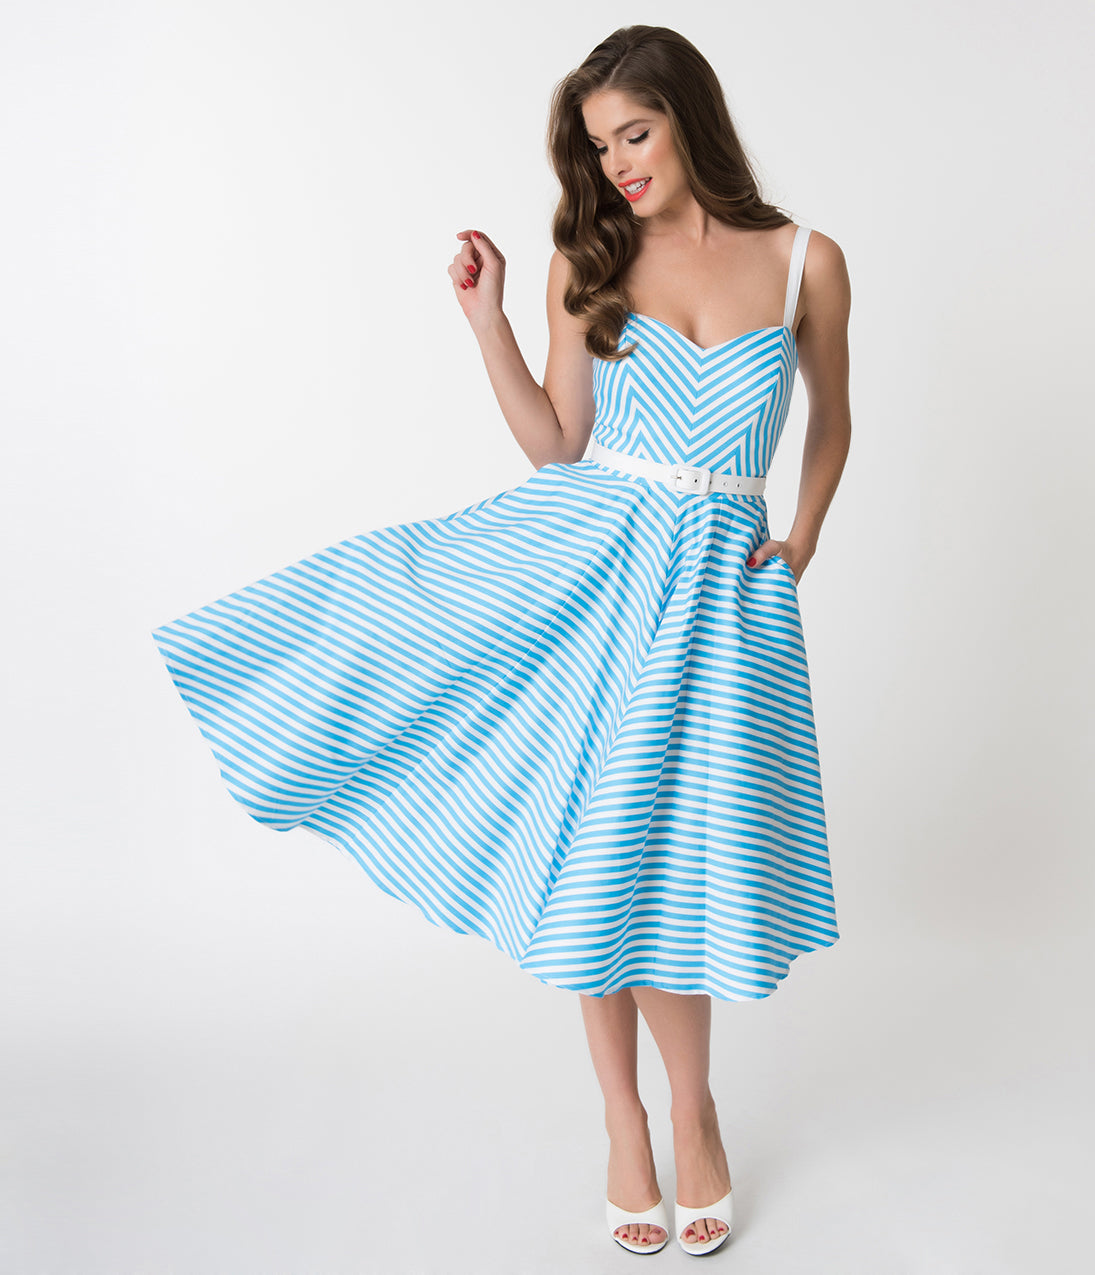 Pin Up Dresses | Pin Up Clothing Vixen By Micheline Pitt Blue Chevron Stripe Dollface Swing Dress $152.00 AT vintagedancer.com